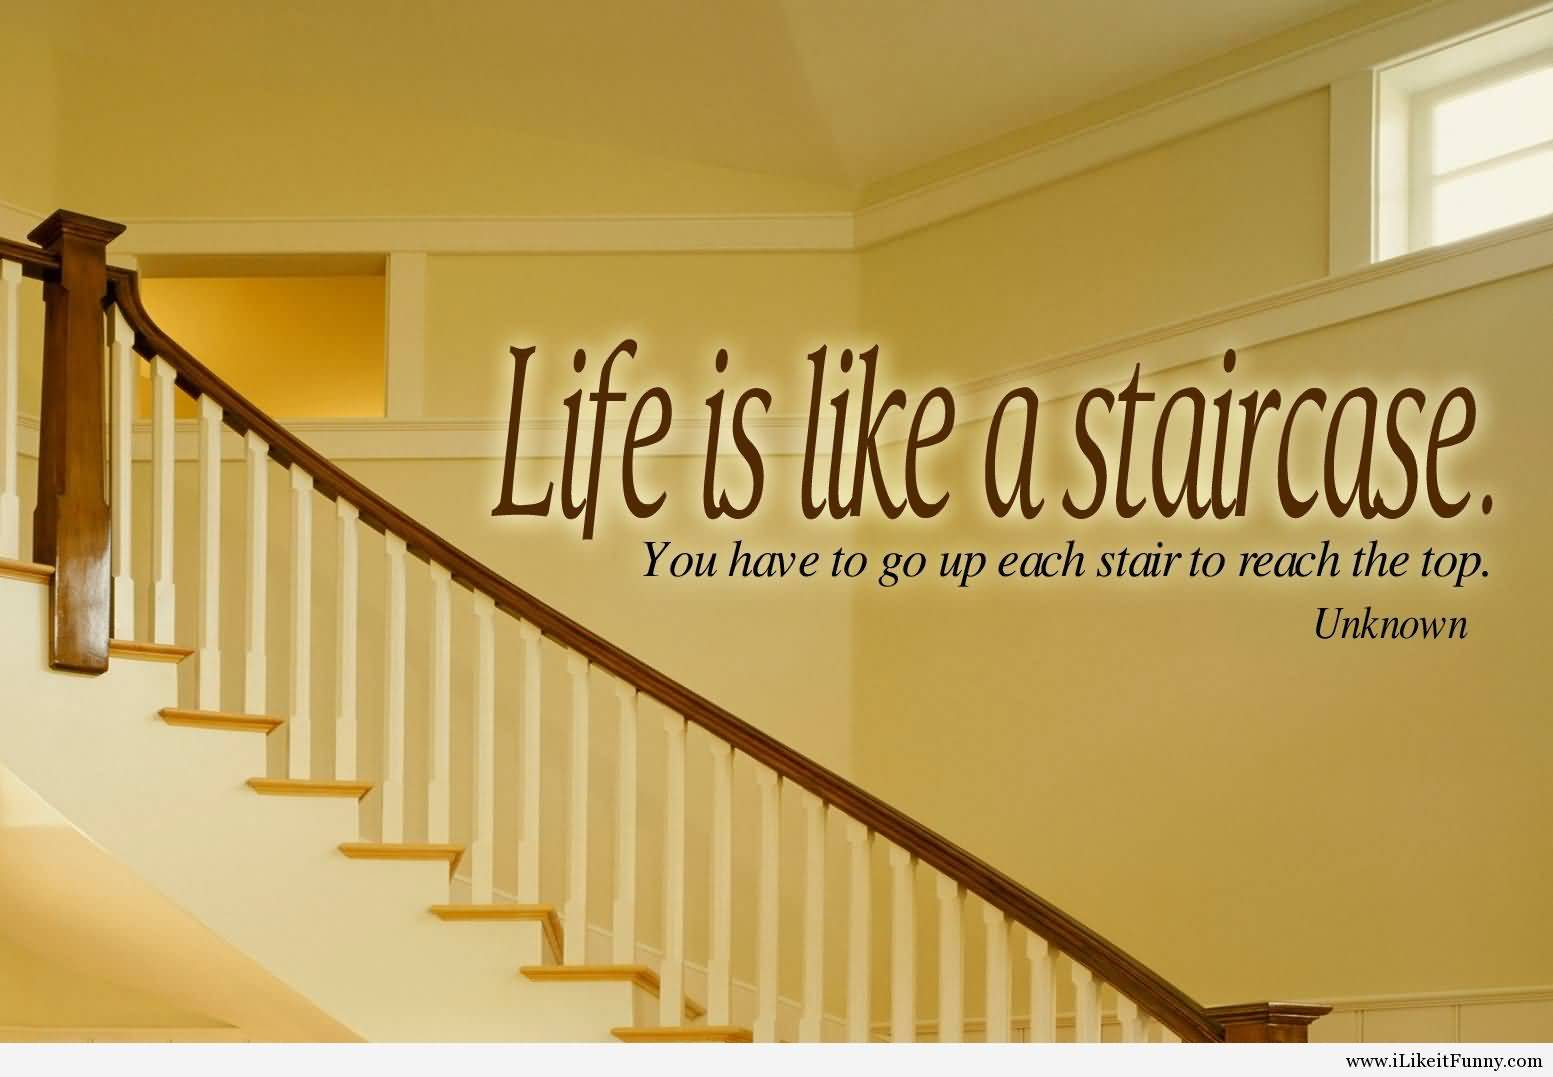 Life Is Like A Staircase Motivational Quotes